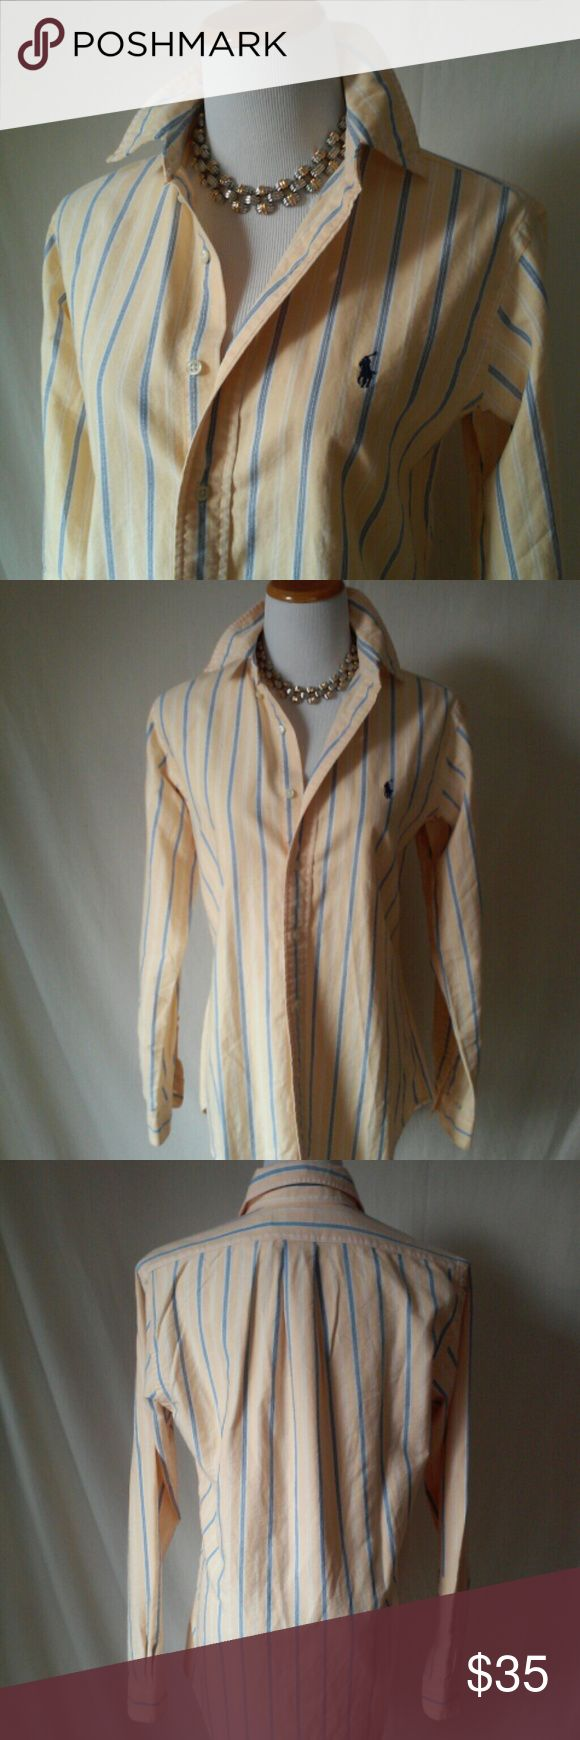 Ralph Lauren preppie yellow oxford shirt Yellow and blue striped, cotton oxford shirt only gets softer with every wash. Men's size small but can be worn oversized up to a size women's 8. Unworn. Ralph Lauren Shirts Casual Button Down Shirts